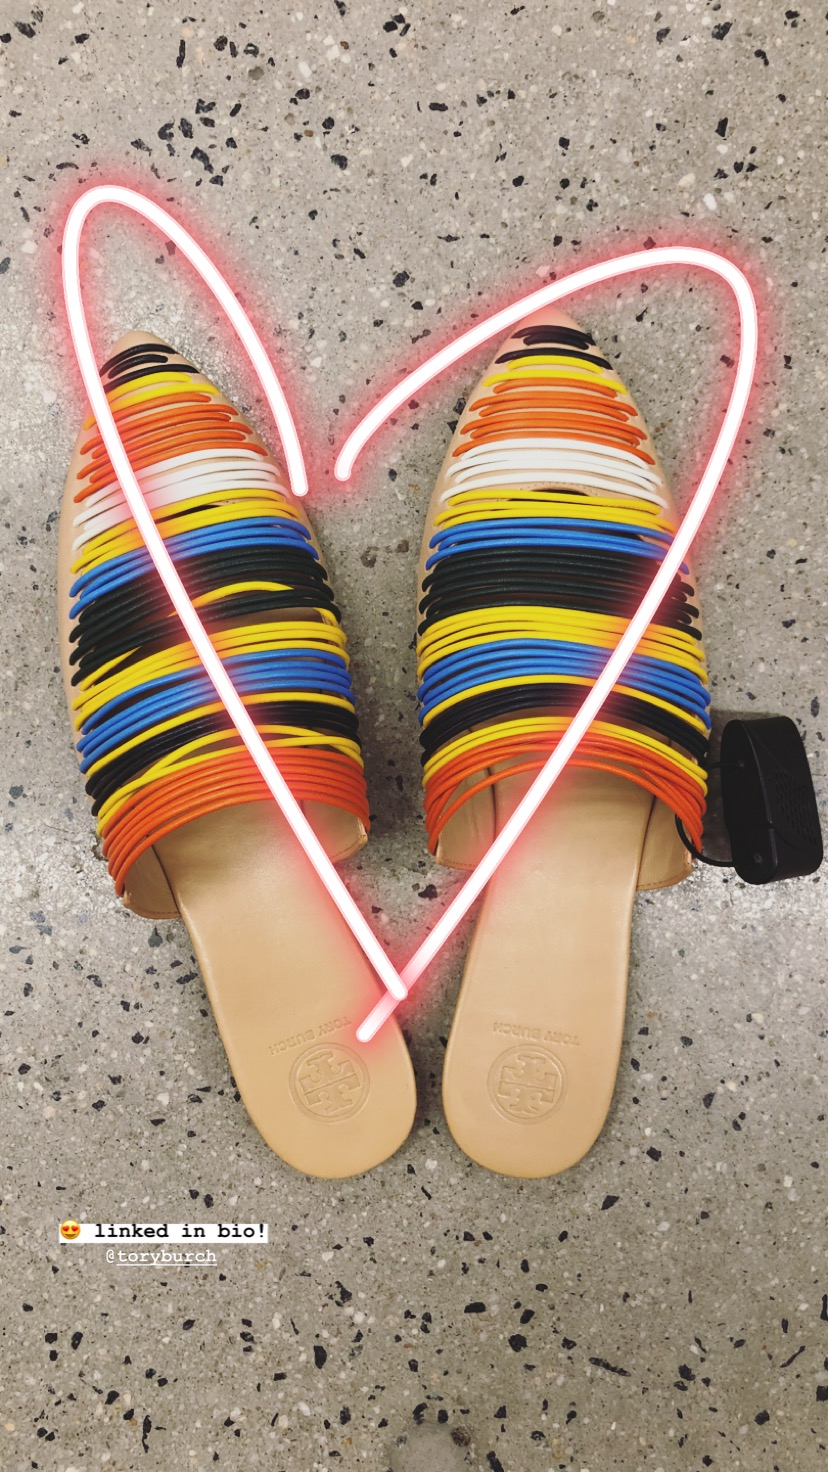 birchcollective-shop-instagram-story-july-7-2018-Tory-Burch-sienna-Slides-nordstrom-rack-charlotte-nc